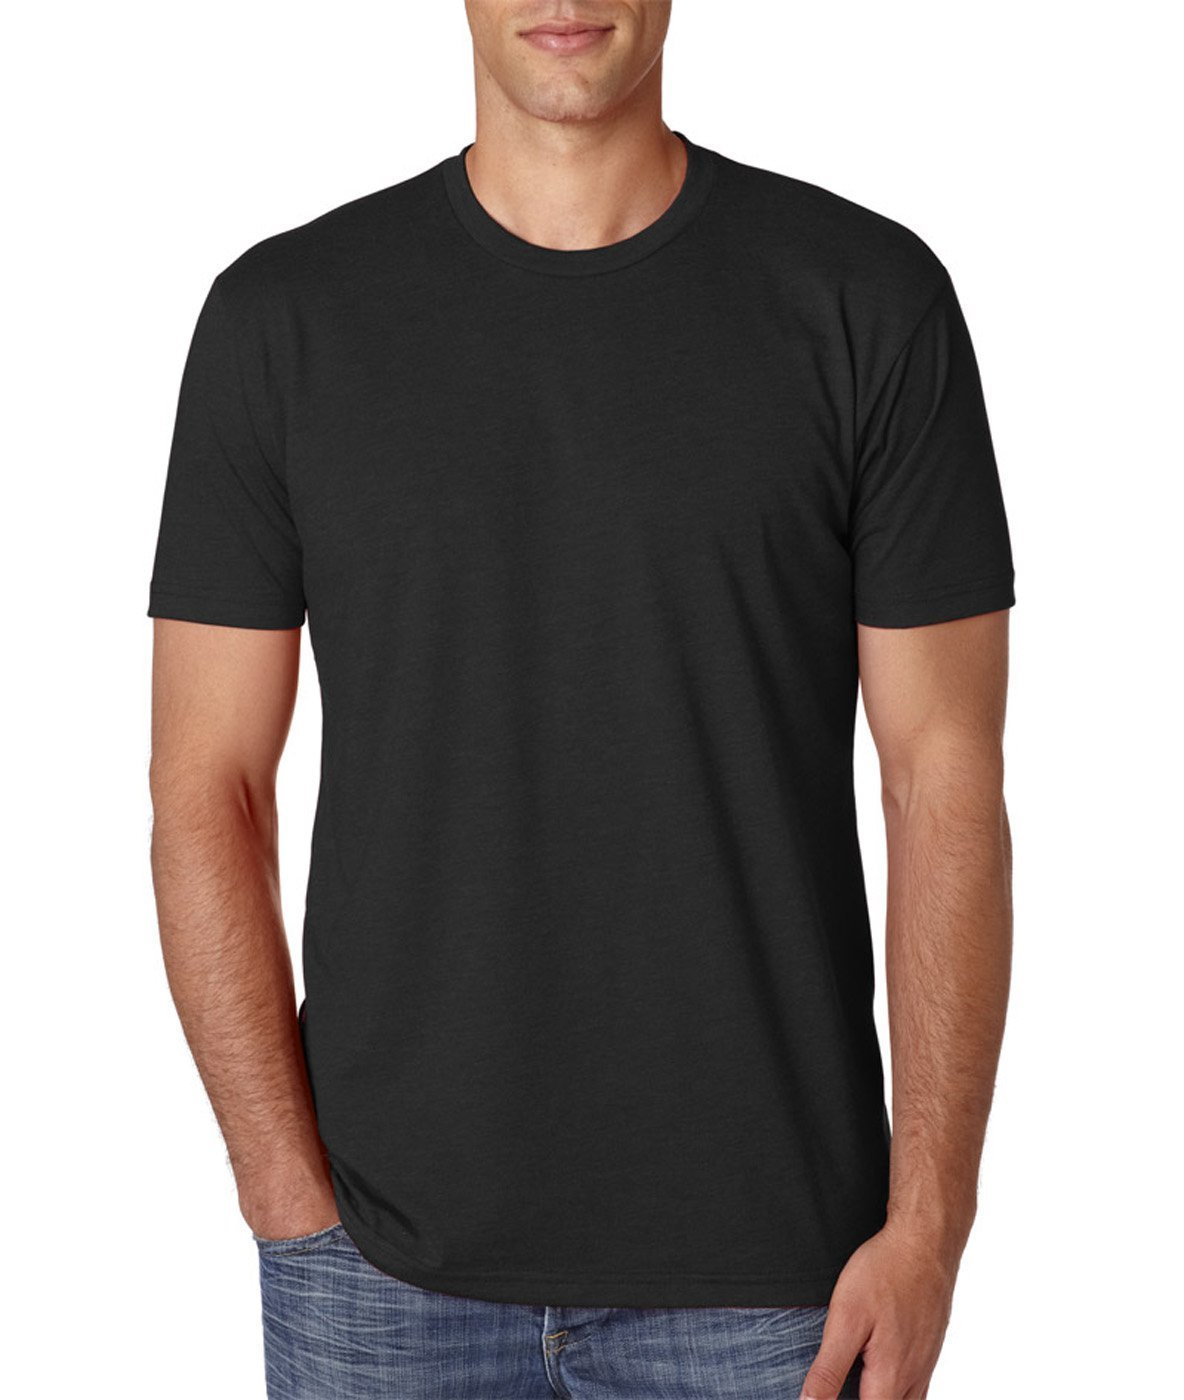 Next Level Premium Fitted CVC Crew Tee Black Medium (Pack 5)